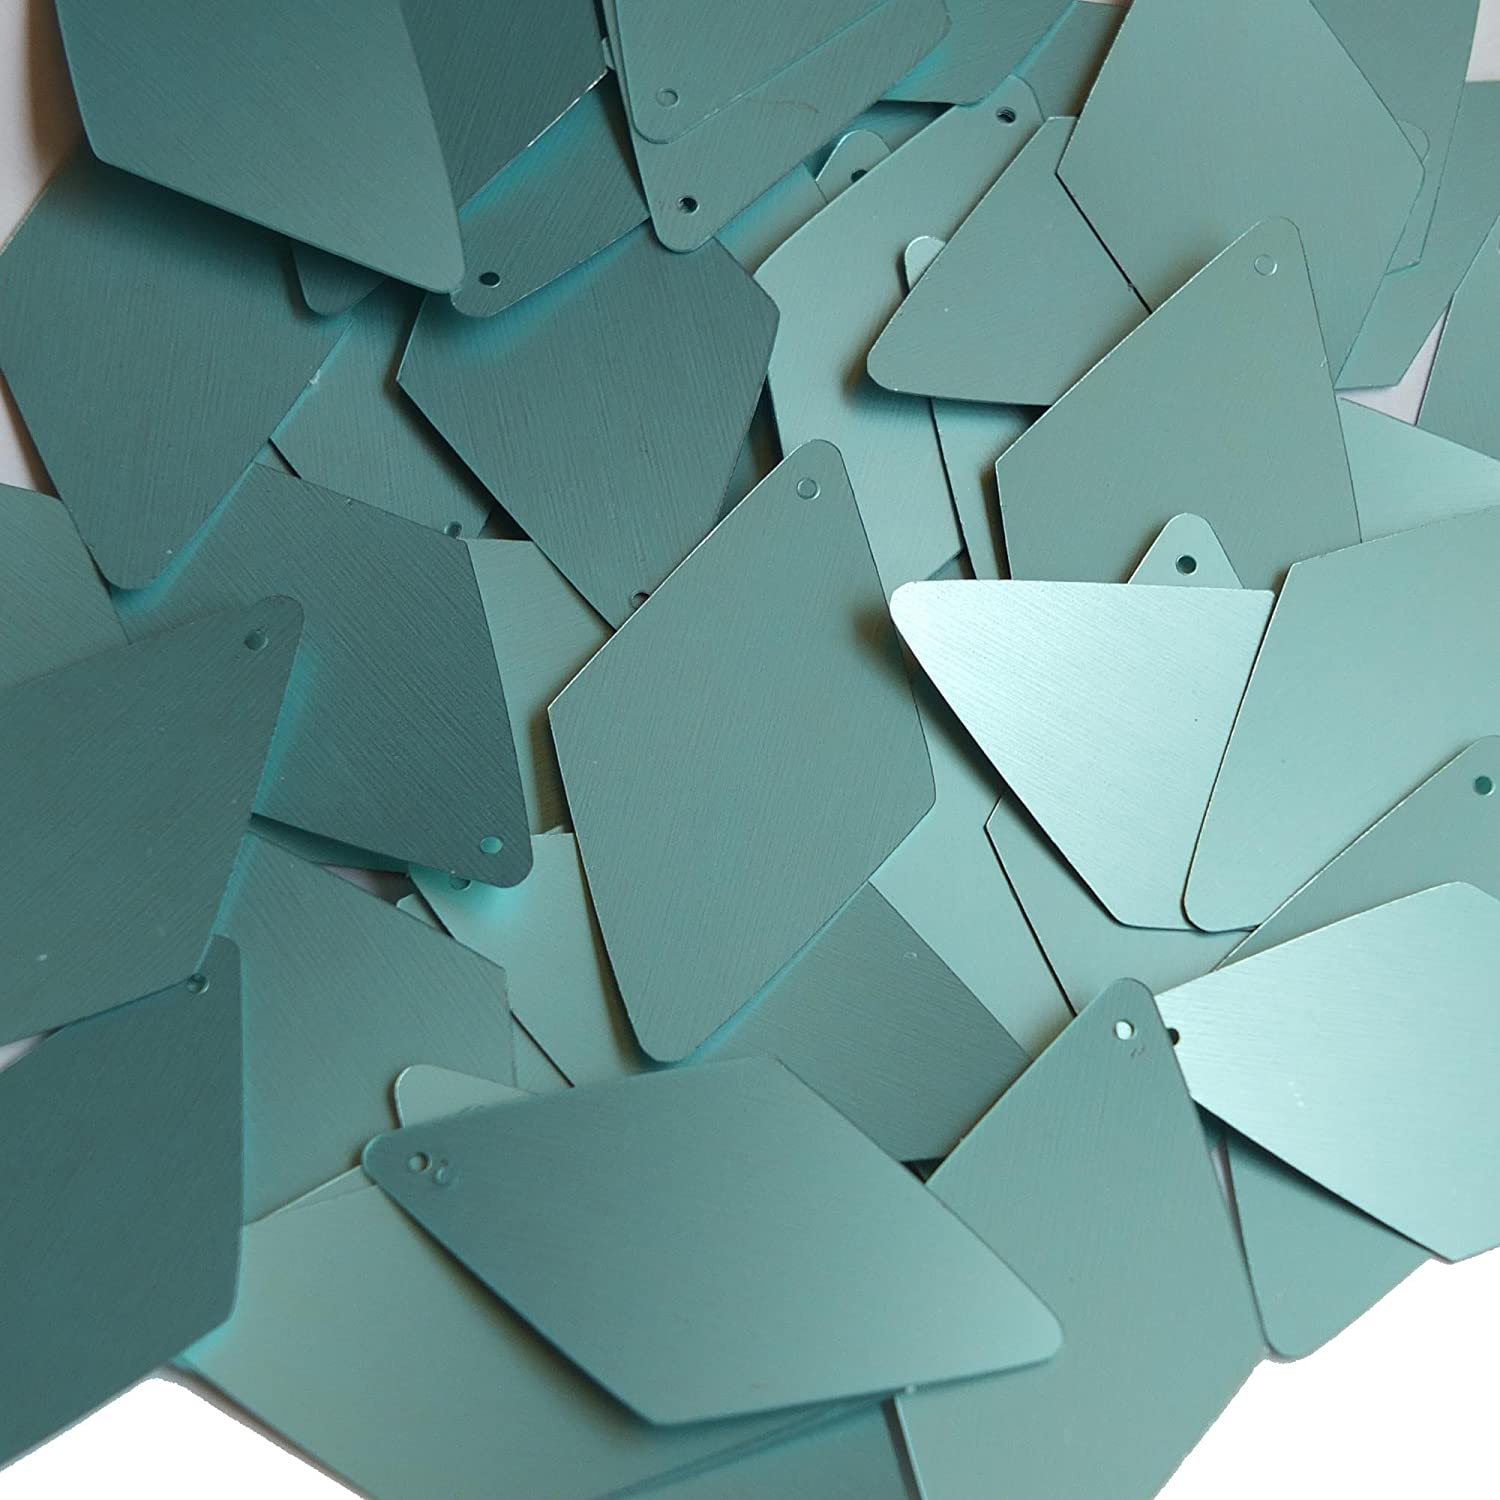 Sequin SeaFoam Green Blue Matte Silk Frost Long Diamond 1.75 inch Couture Loose Paillettes Made in USA.